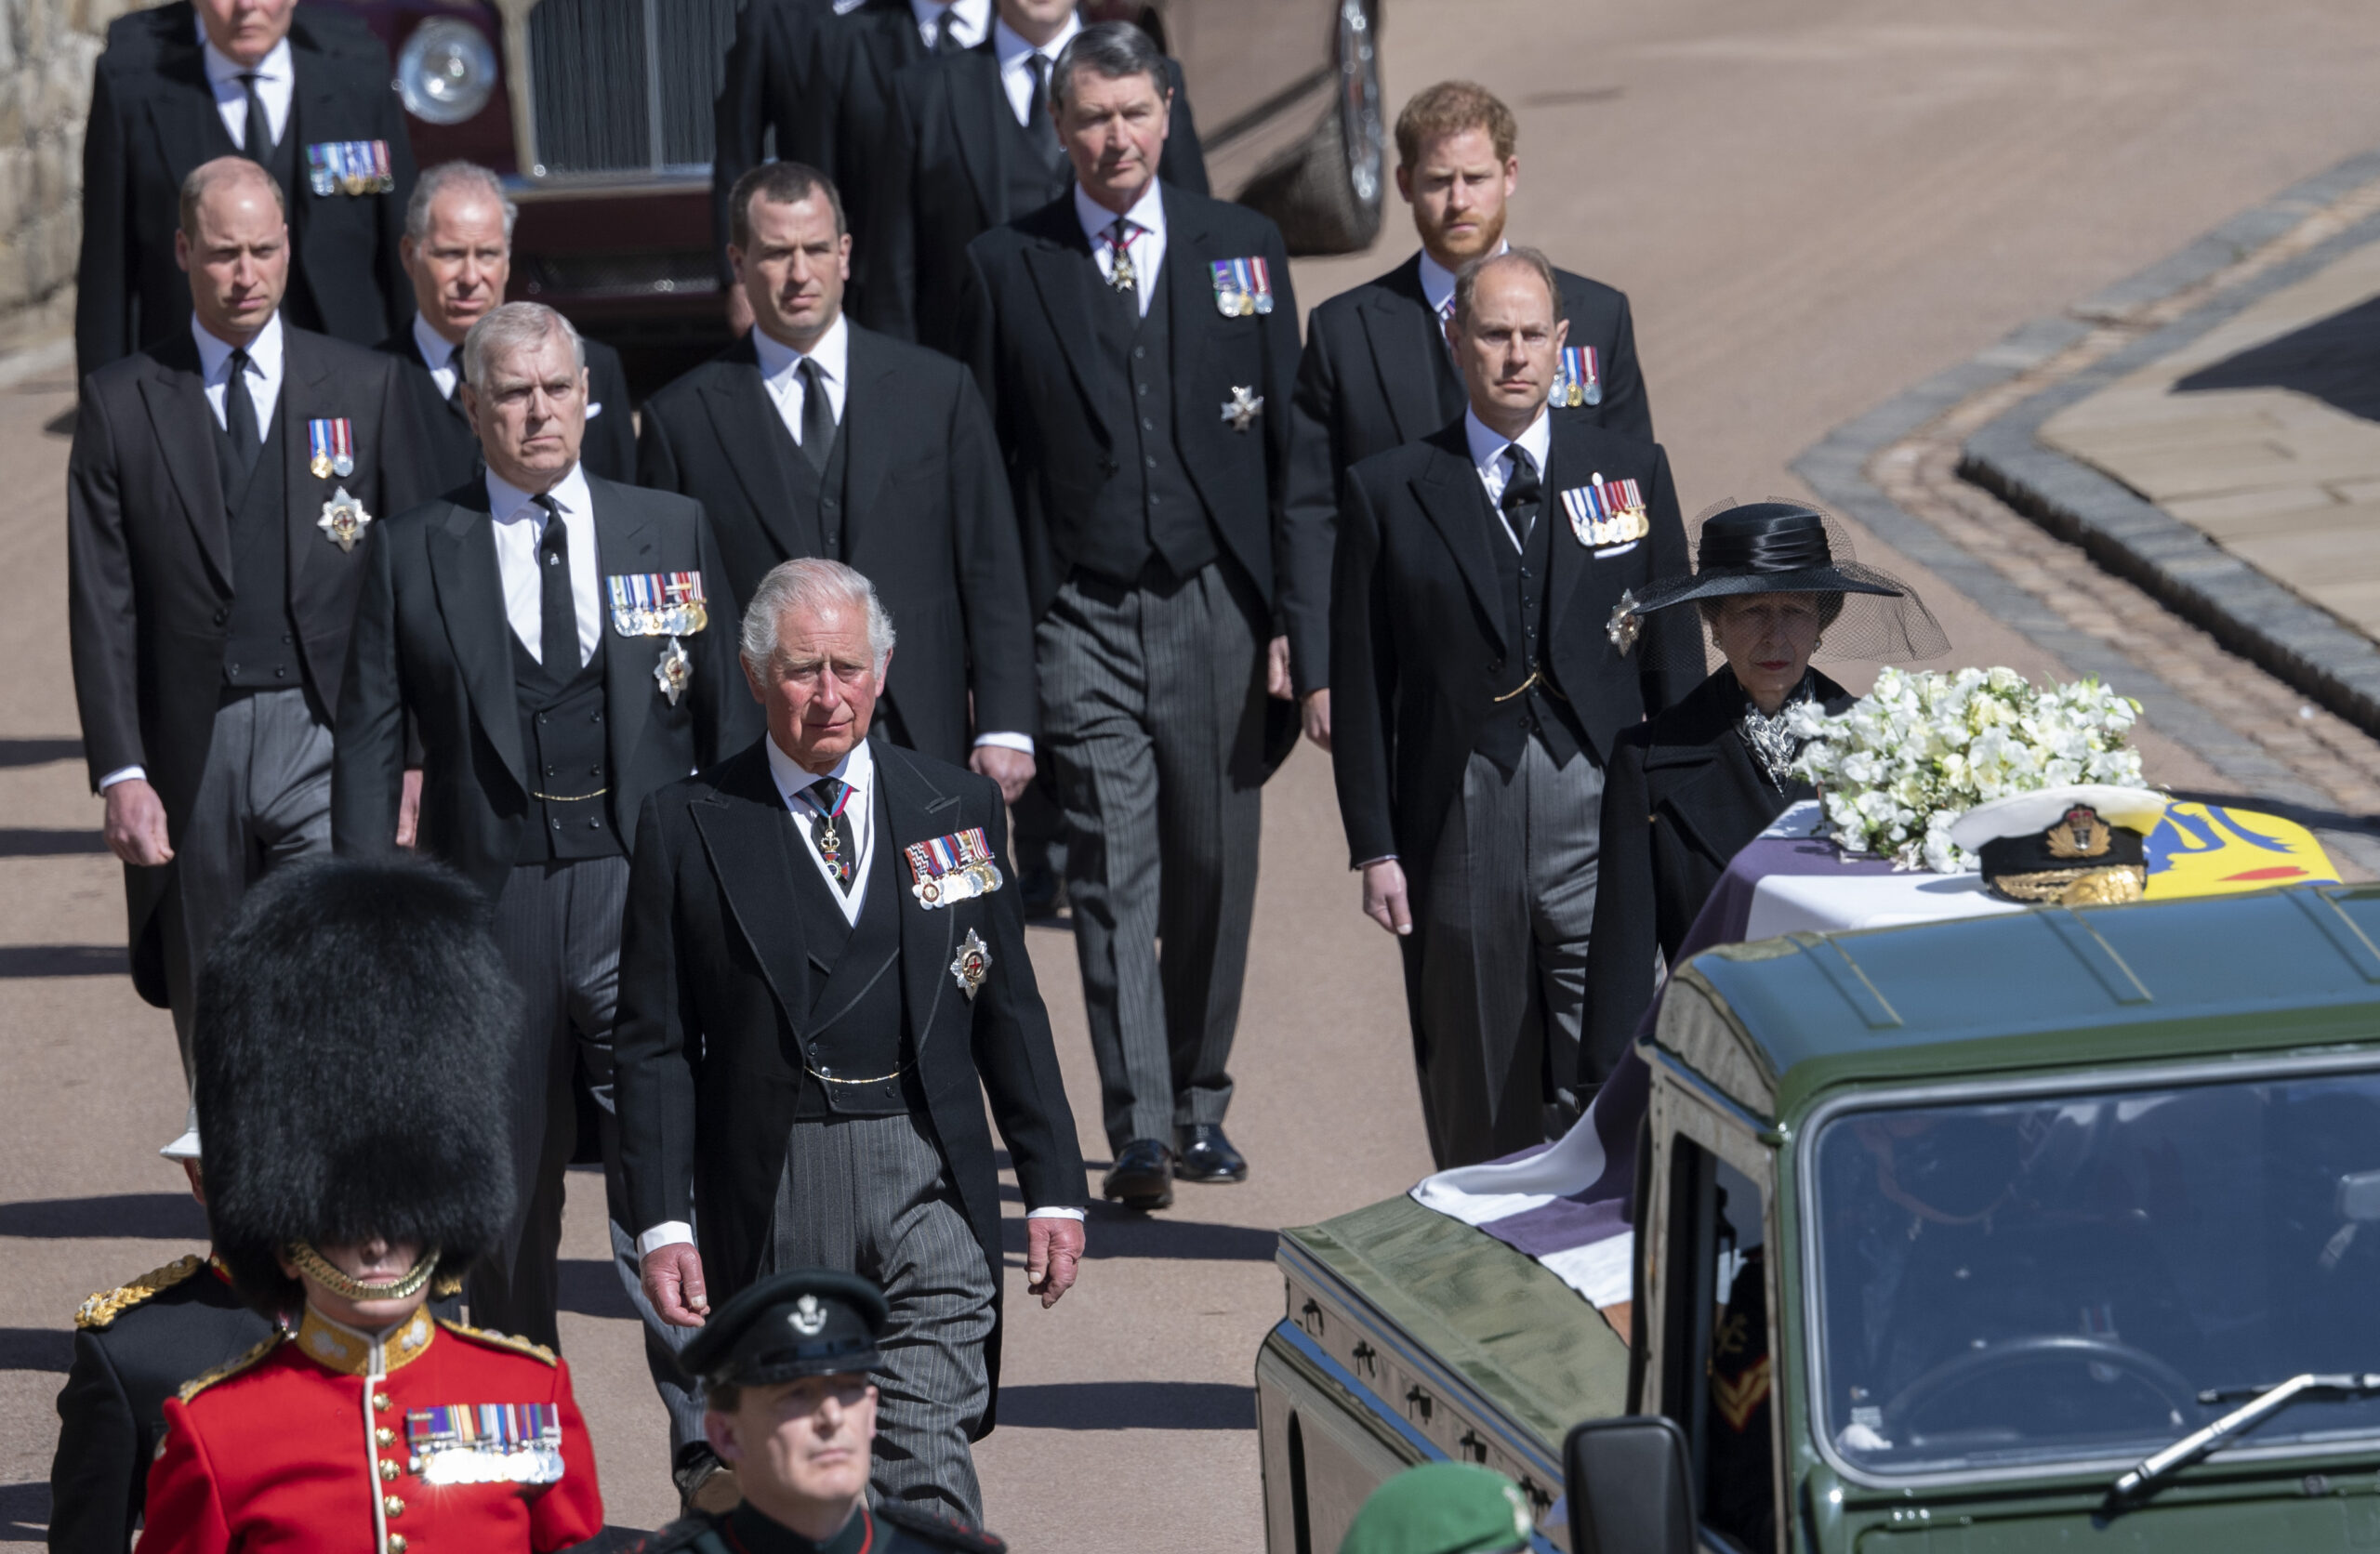 Prince Charles, Prince of Wales; Prince William, Duke of Cambridge; Prince Harry, Duke of Sussex; and others during the funeral of Prince Philip, Duke of Edinburgh on April 17, 2021 in Windsor, England.